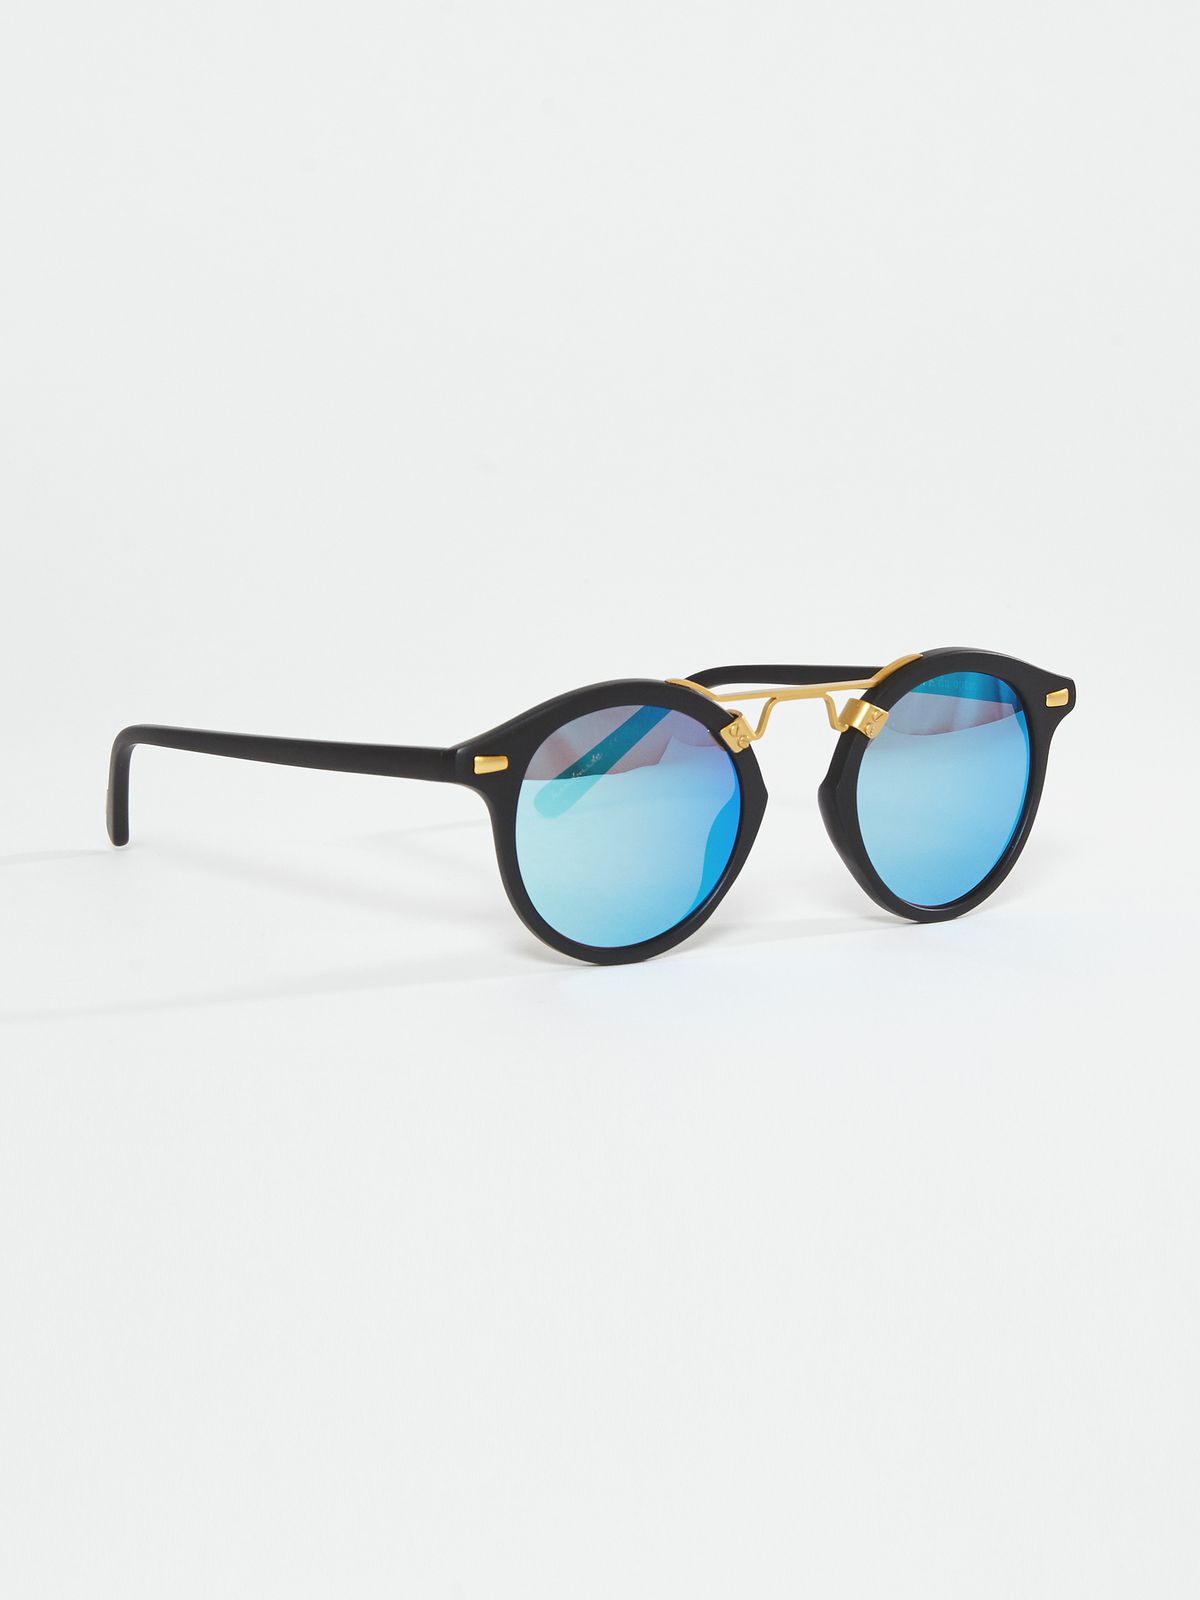 Concrete+Water round frame sunglasses with blue tint